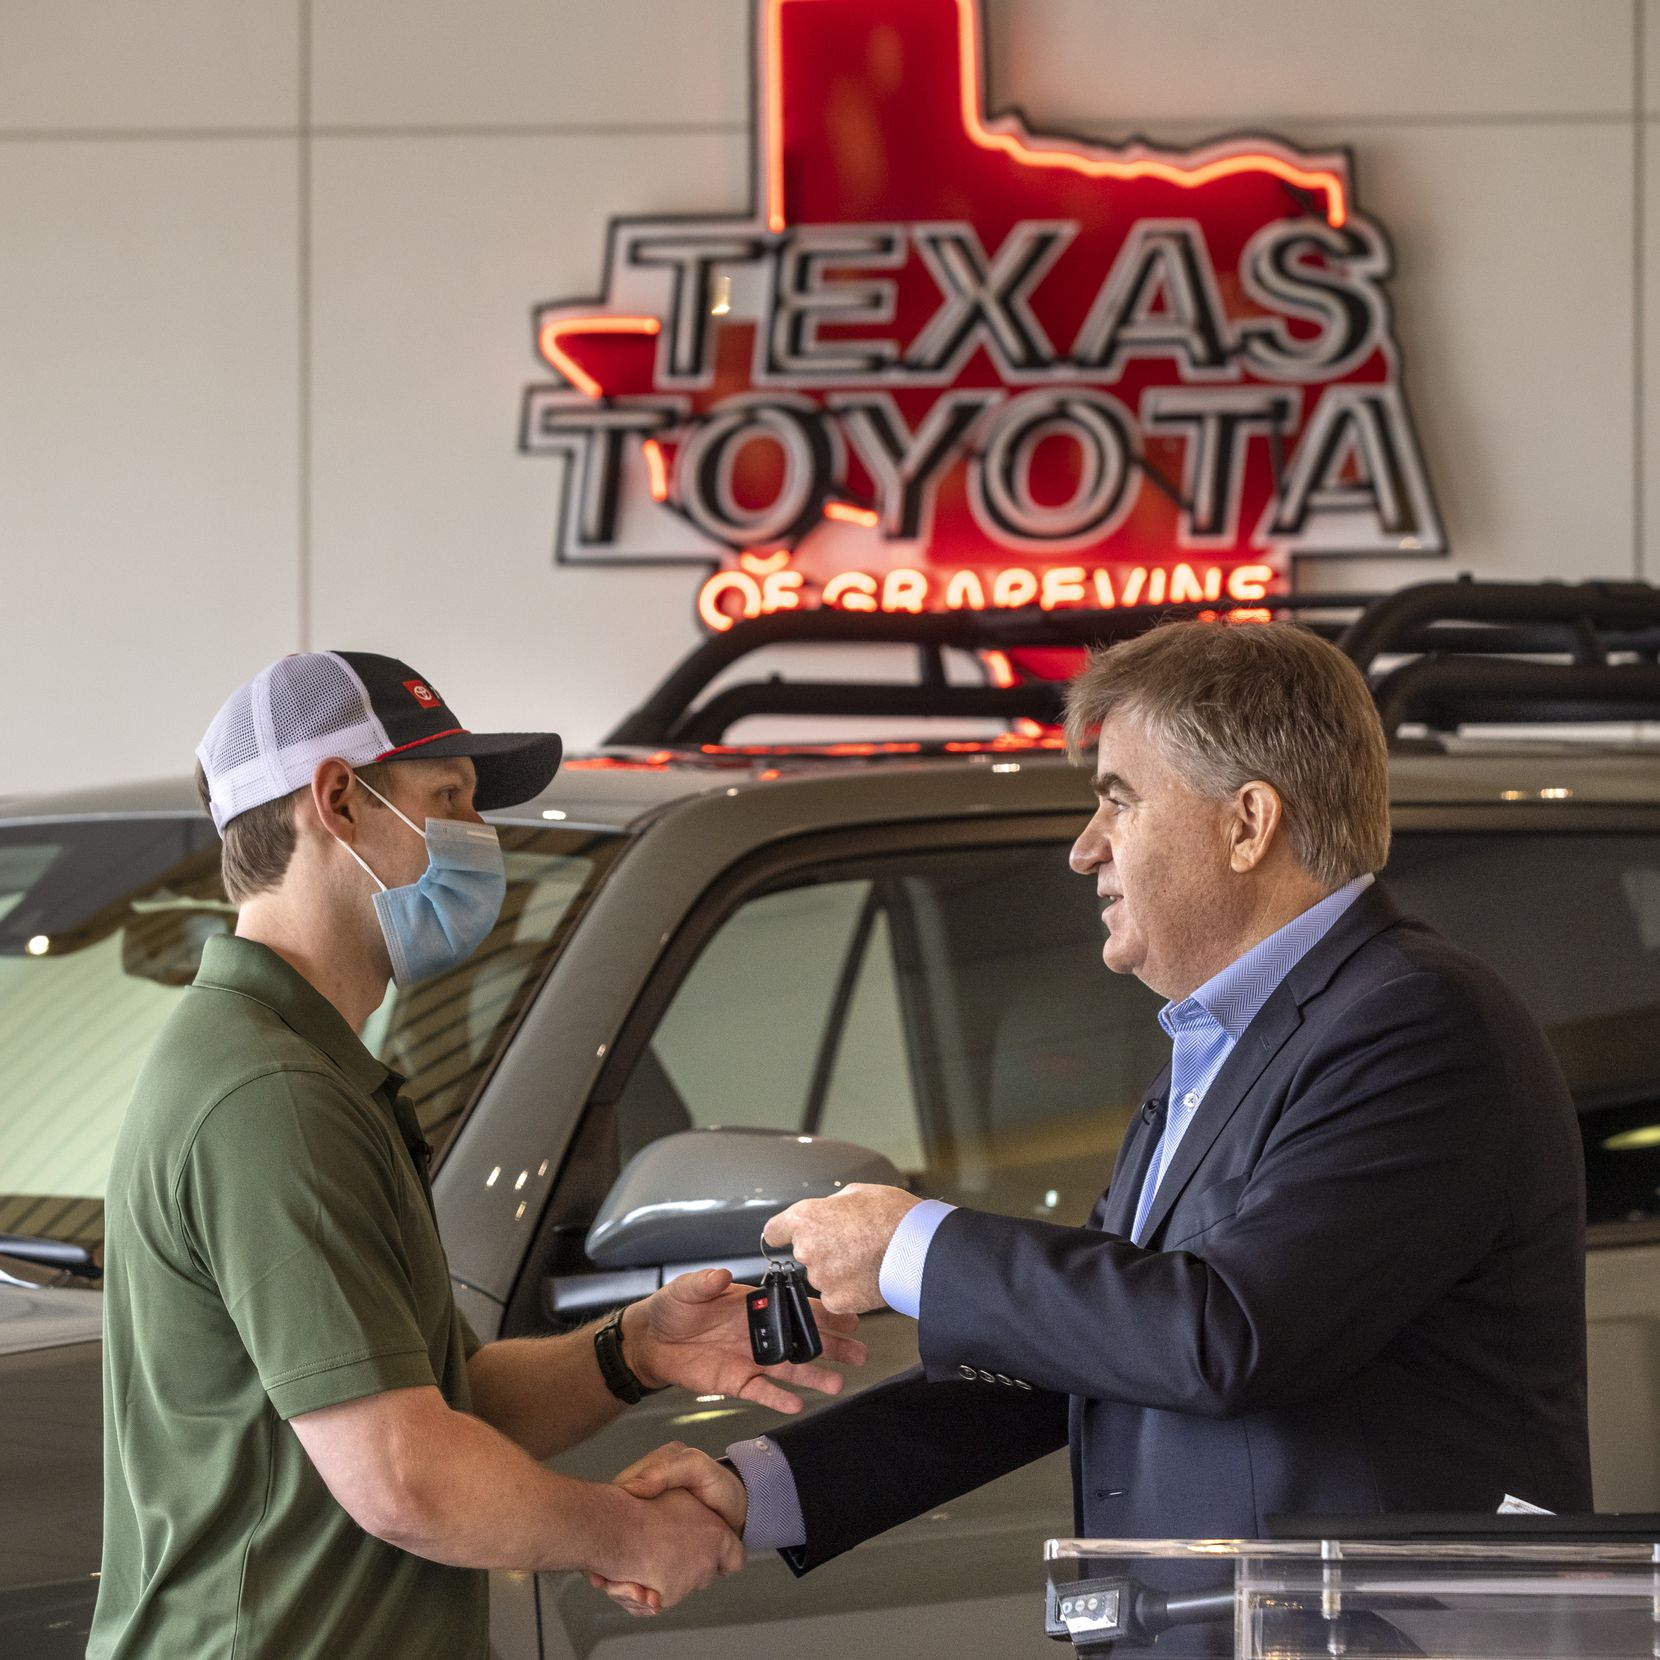 Bob Carter (right), executive vice president of sales for Toyota Motor North America, presents the keys to a 2021 Toyota 4Runner TRD Pro to EMT Trey McDaniel at the Texas Toyota of Grapevine dealership on Thursday, Feb. 25, 2021, in Grapevine, Texas.